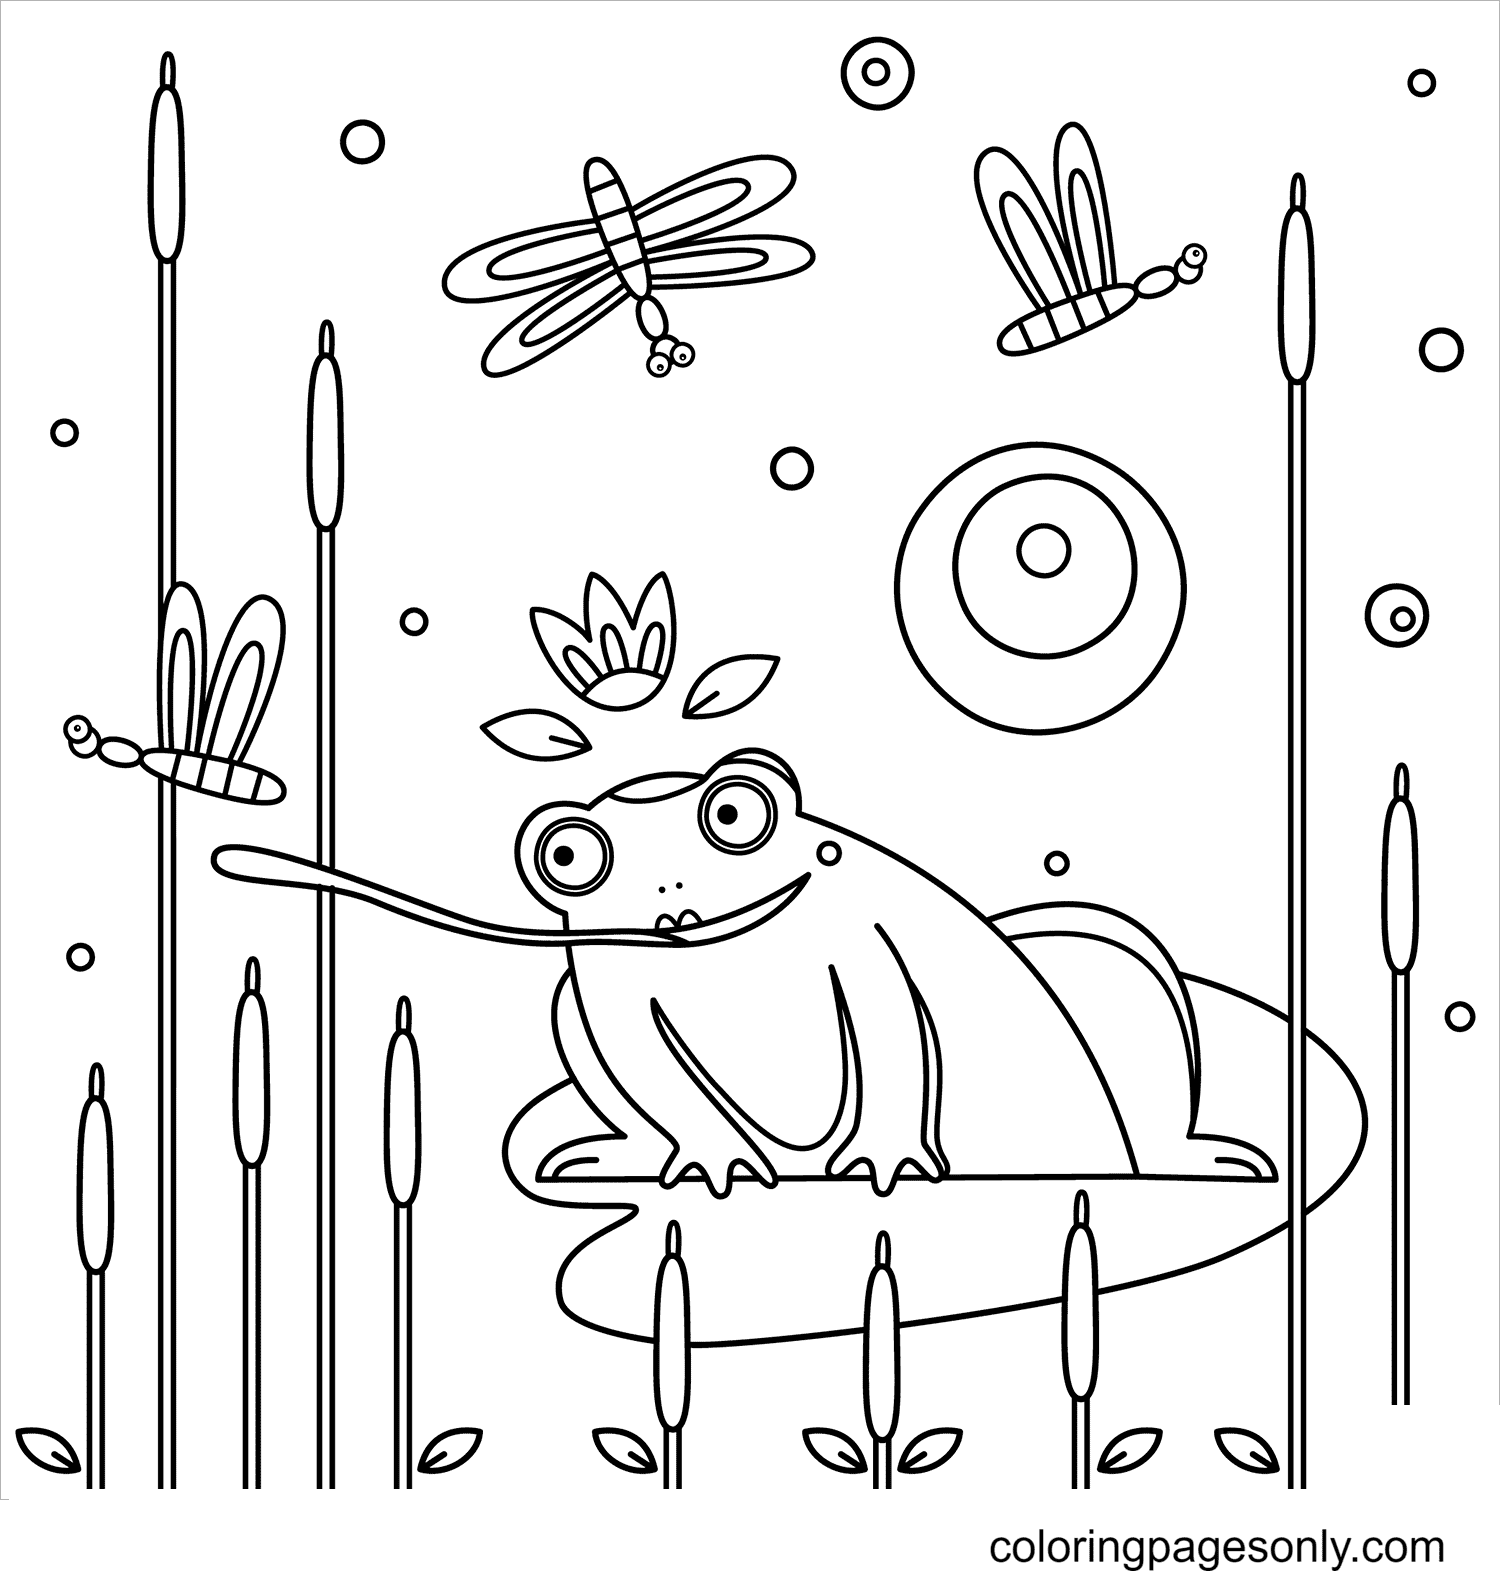 Frog Catches Prey Coloring Page